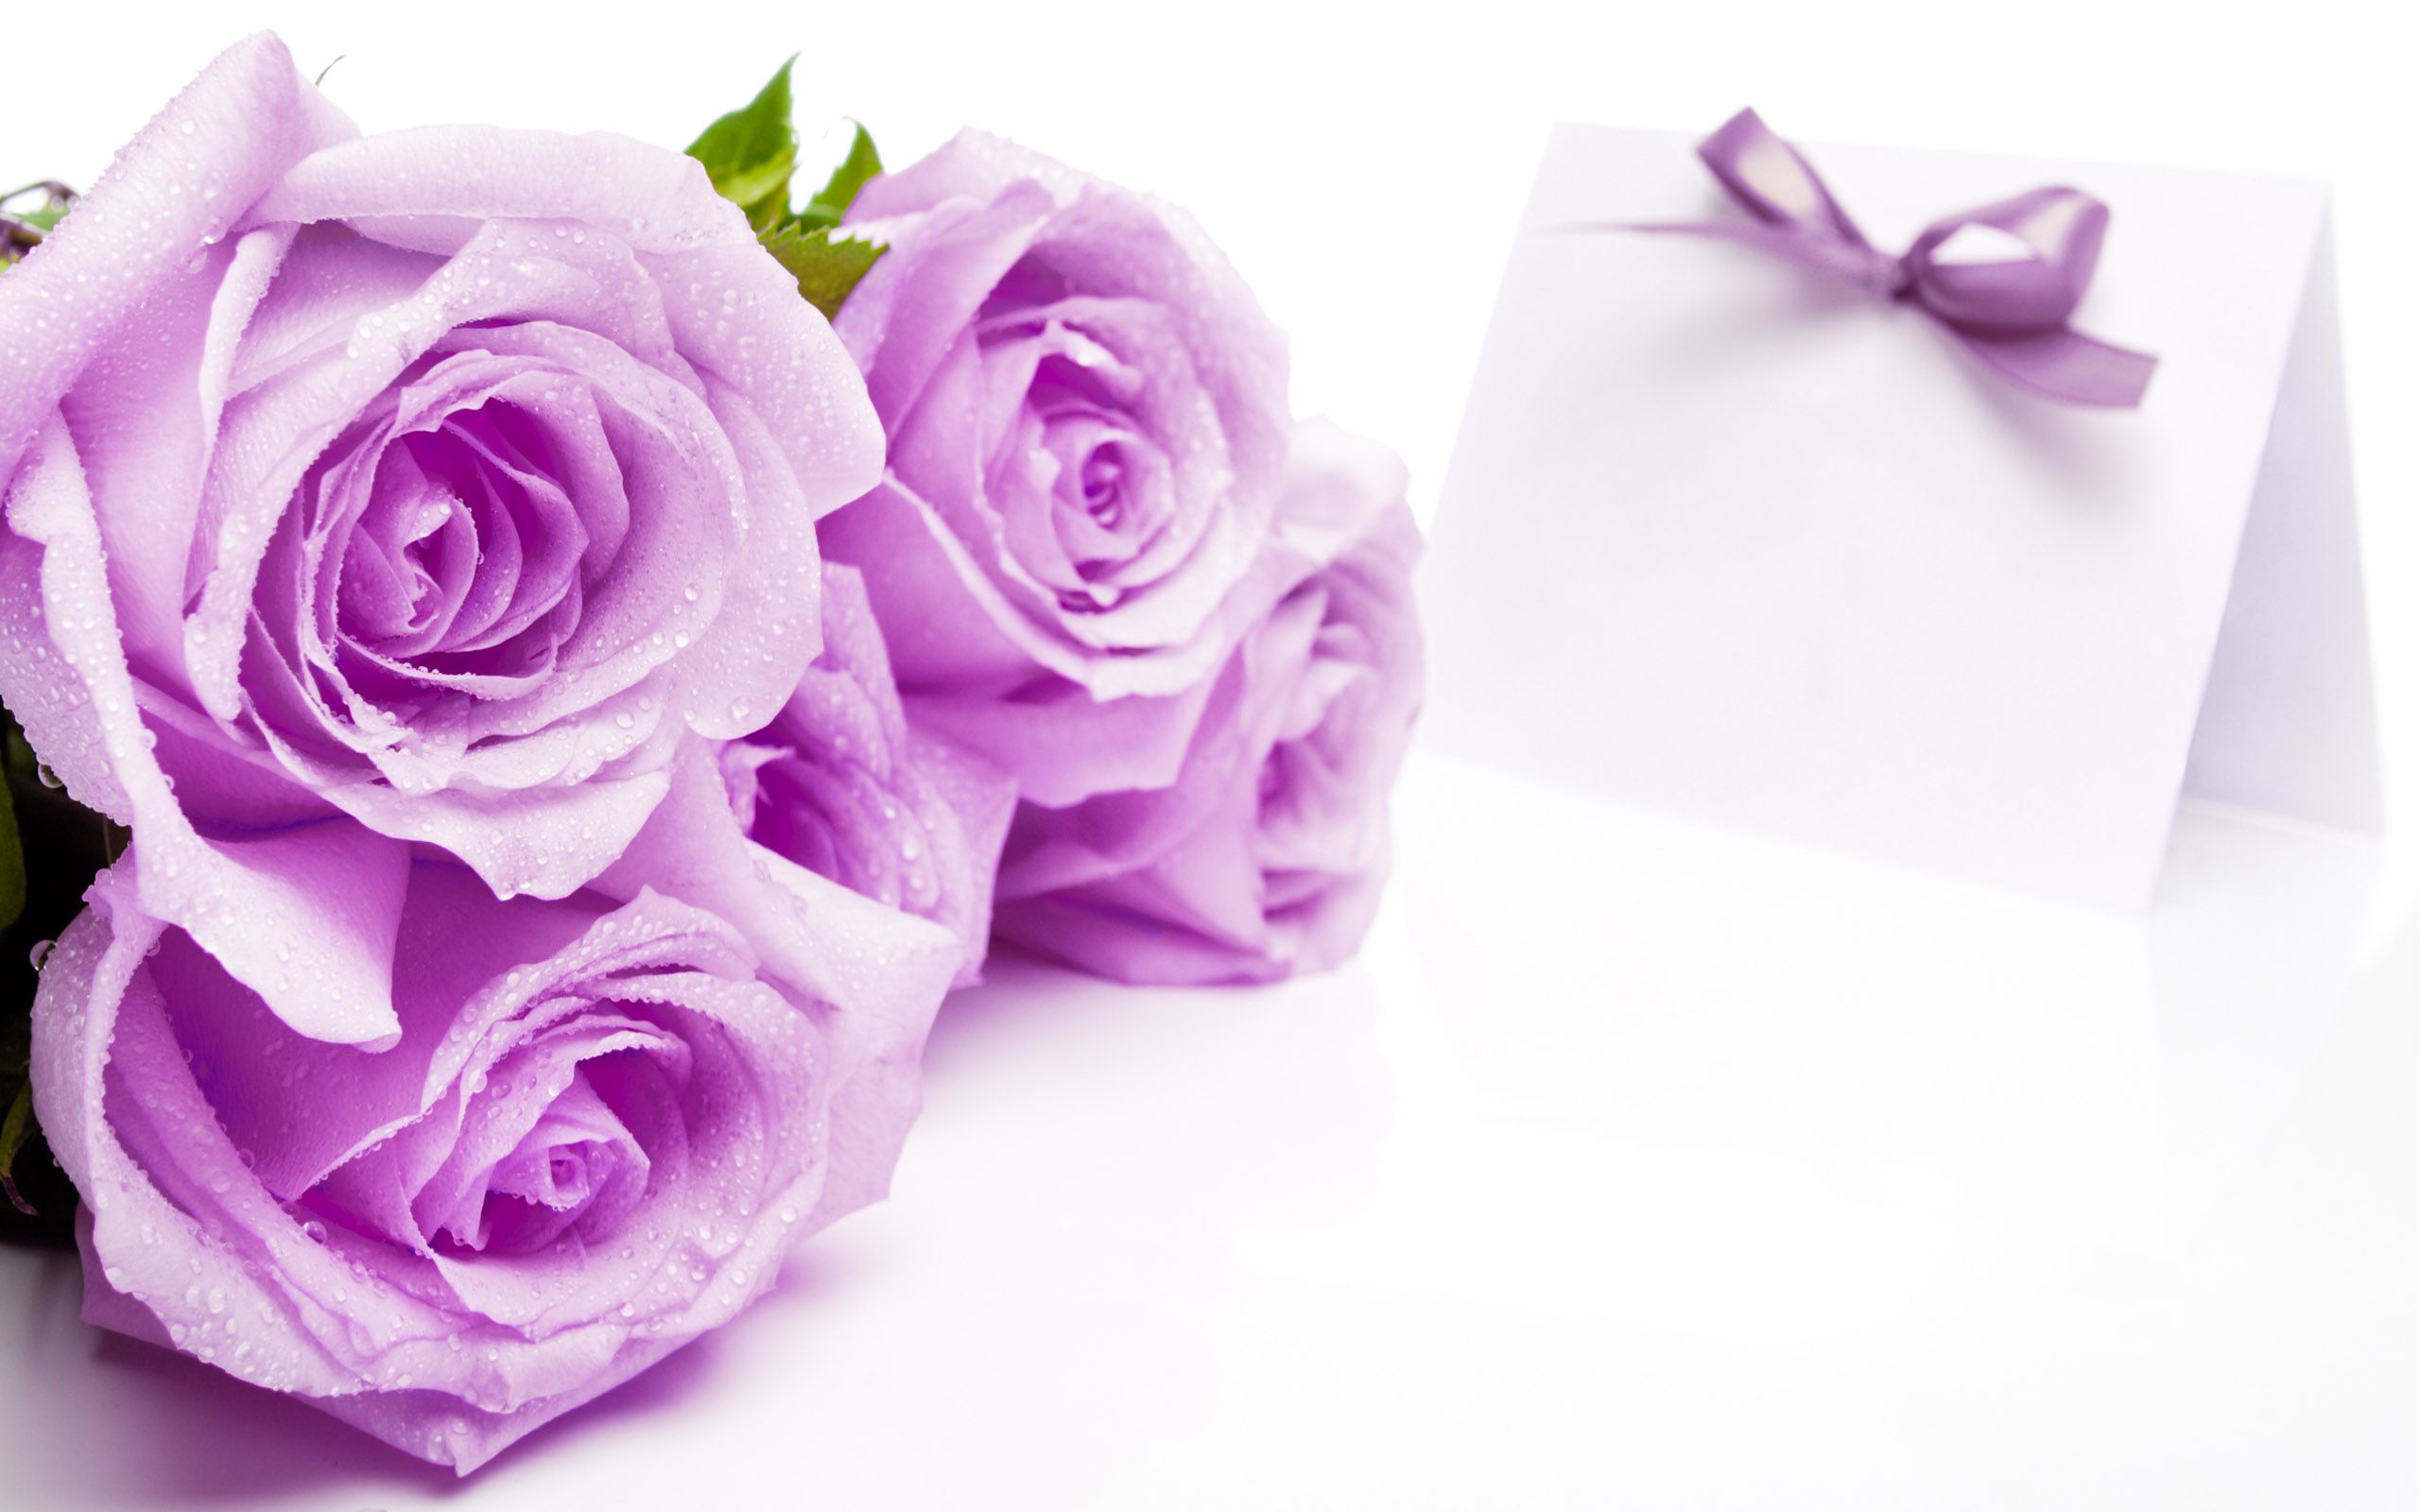 Beautiful rose images and wallpapers 14